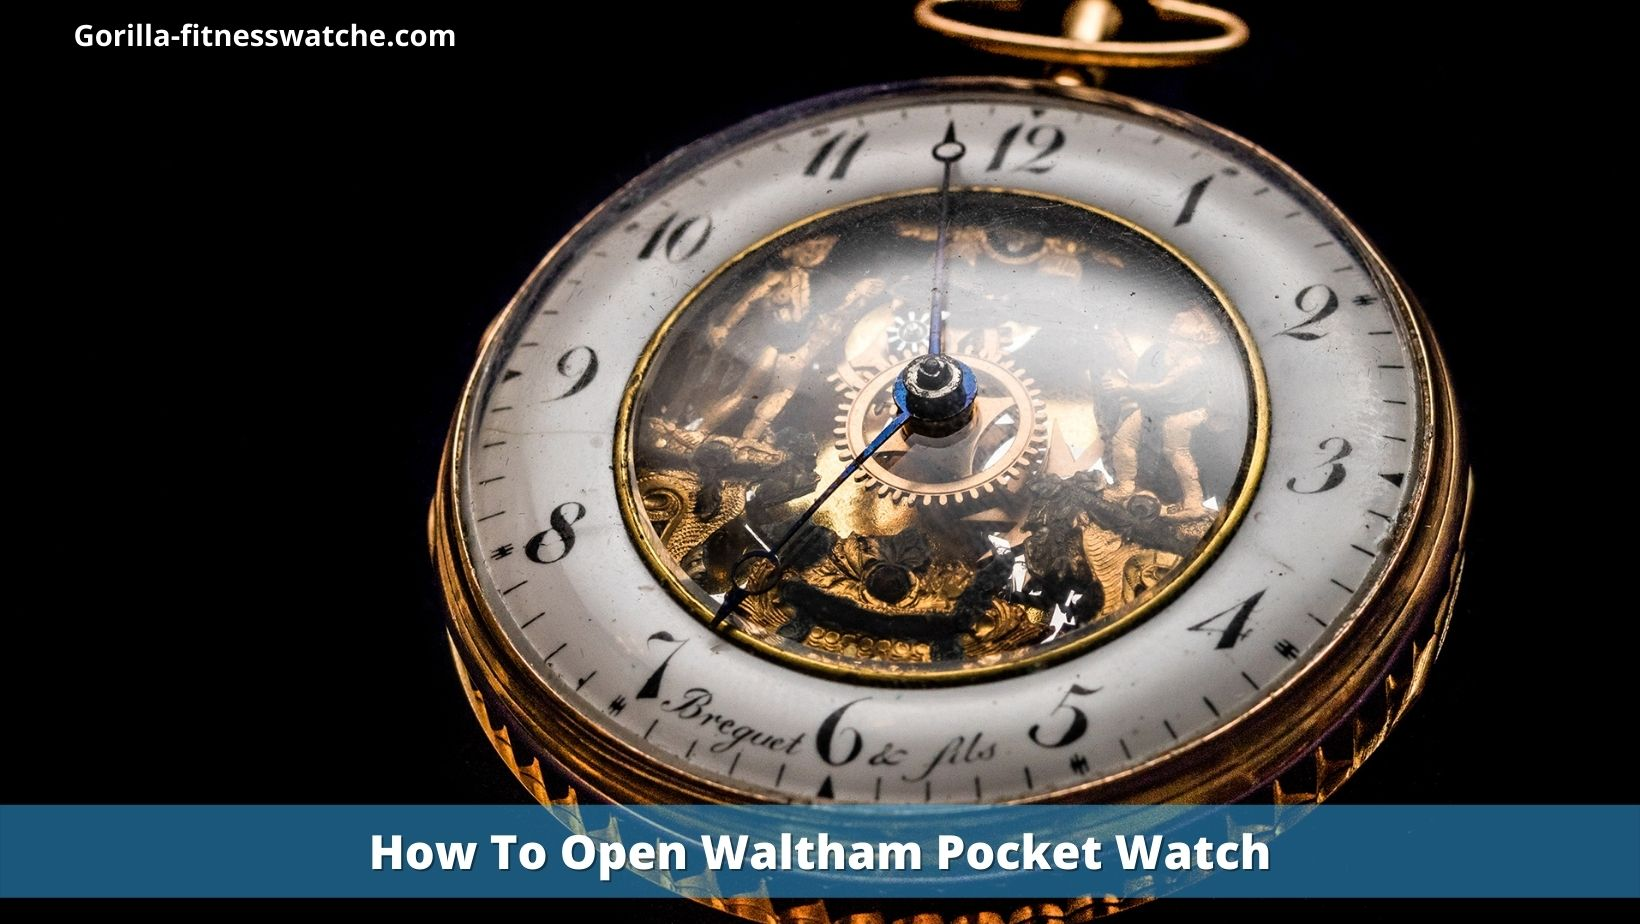 How To Open Waltham Pocket Watch: